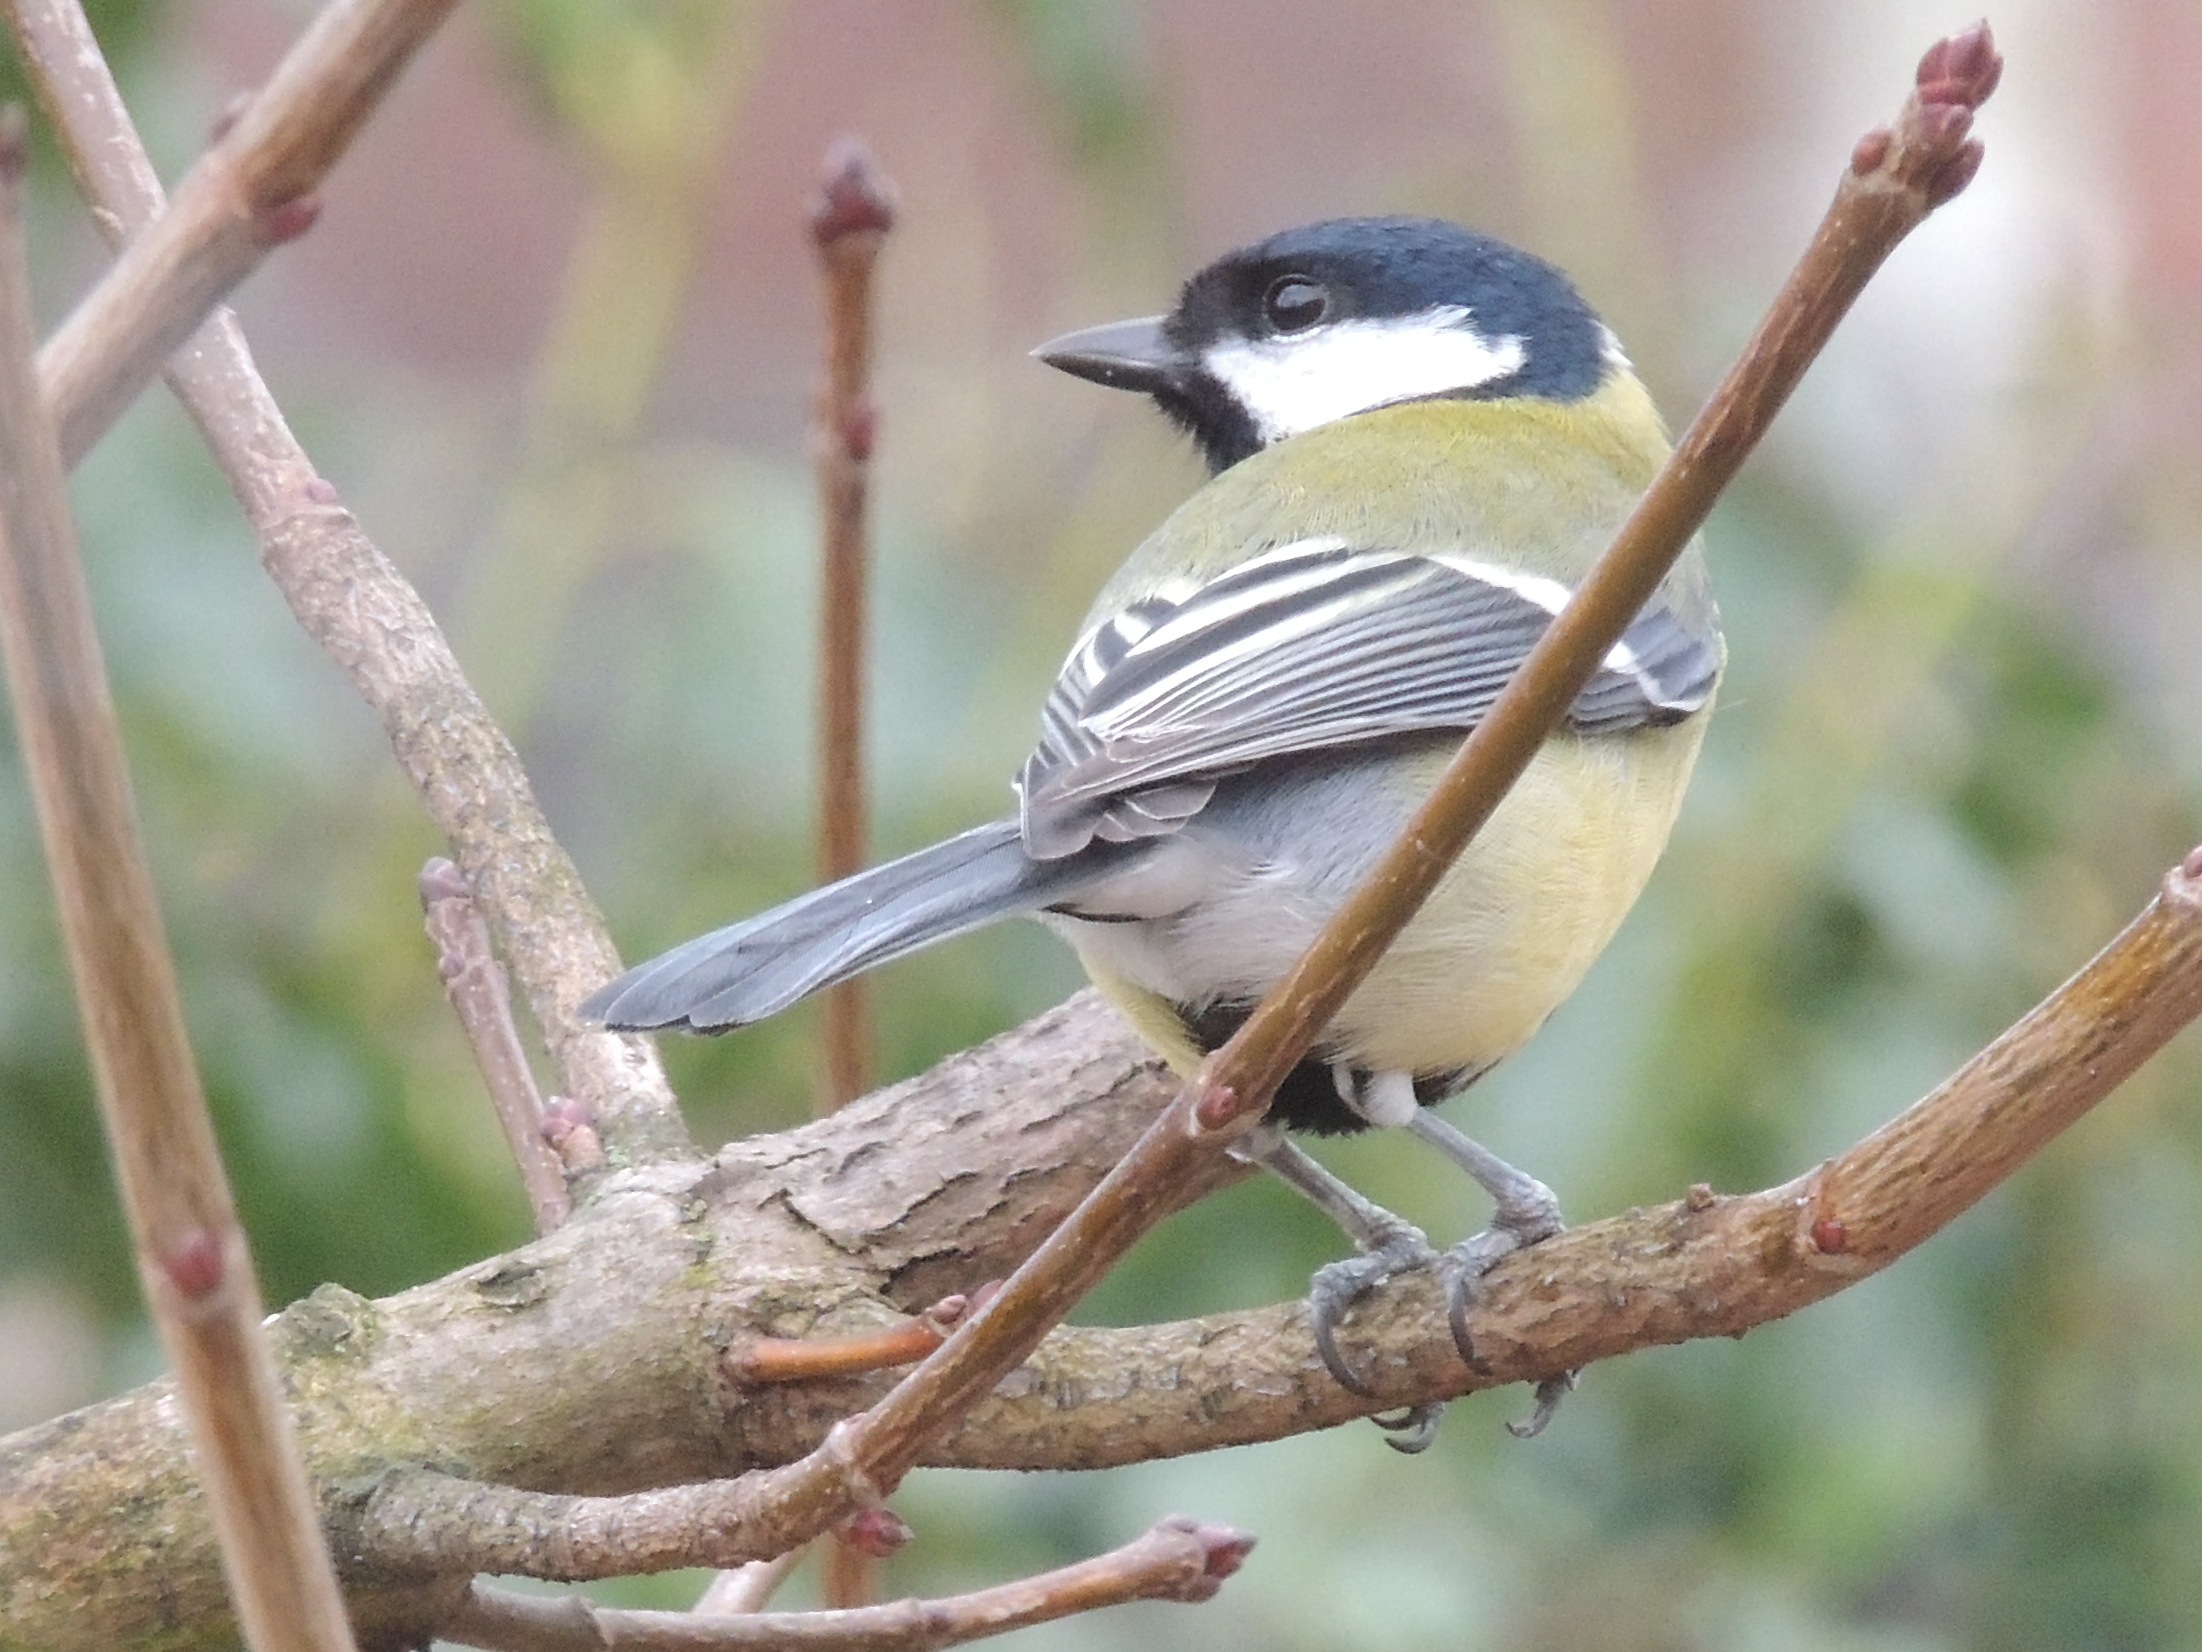 Bird, Garden Bird, Great Tit Image, Photograph Wild Bird The Great Tit,